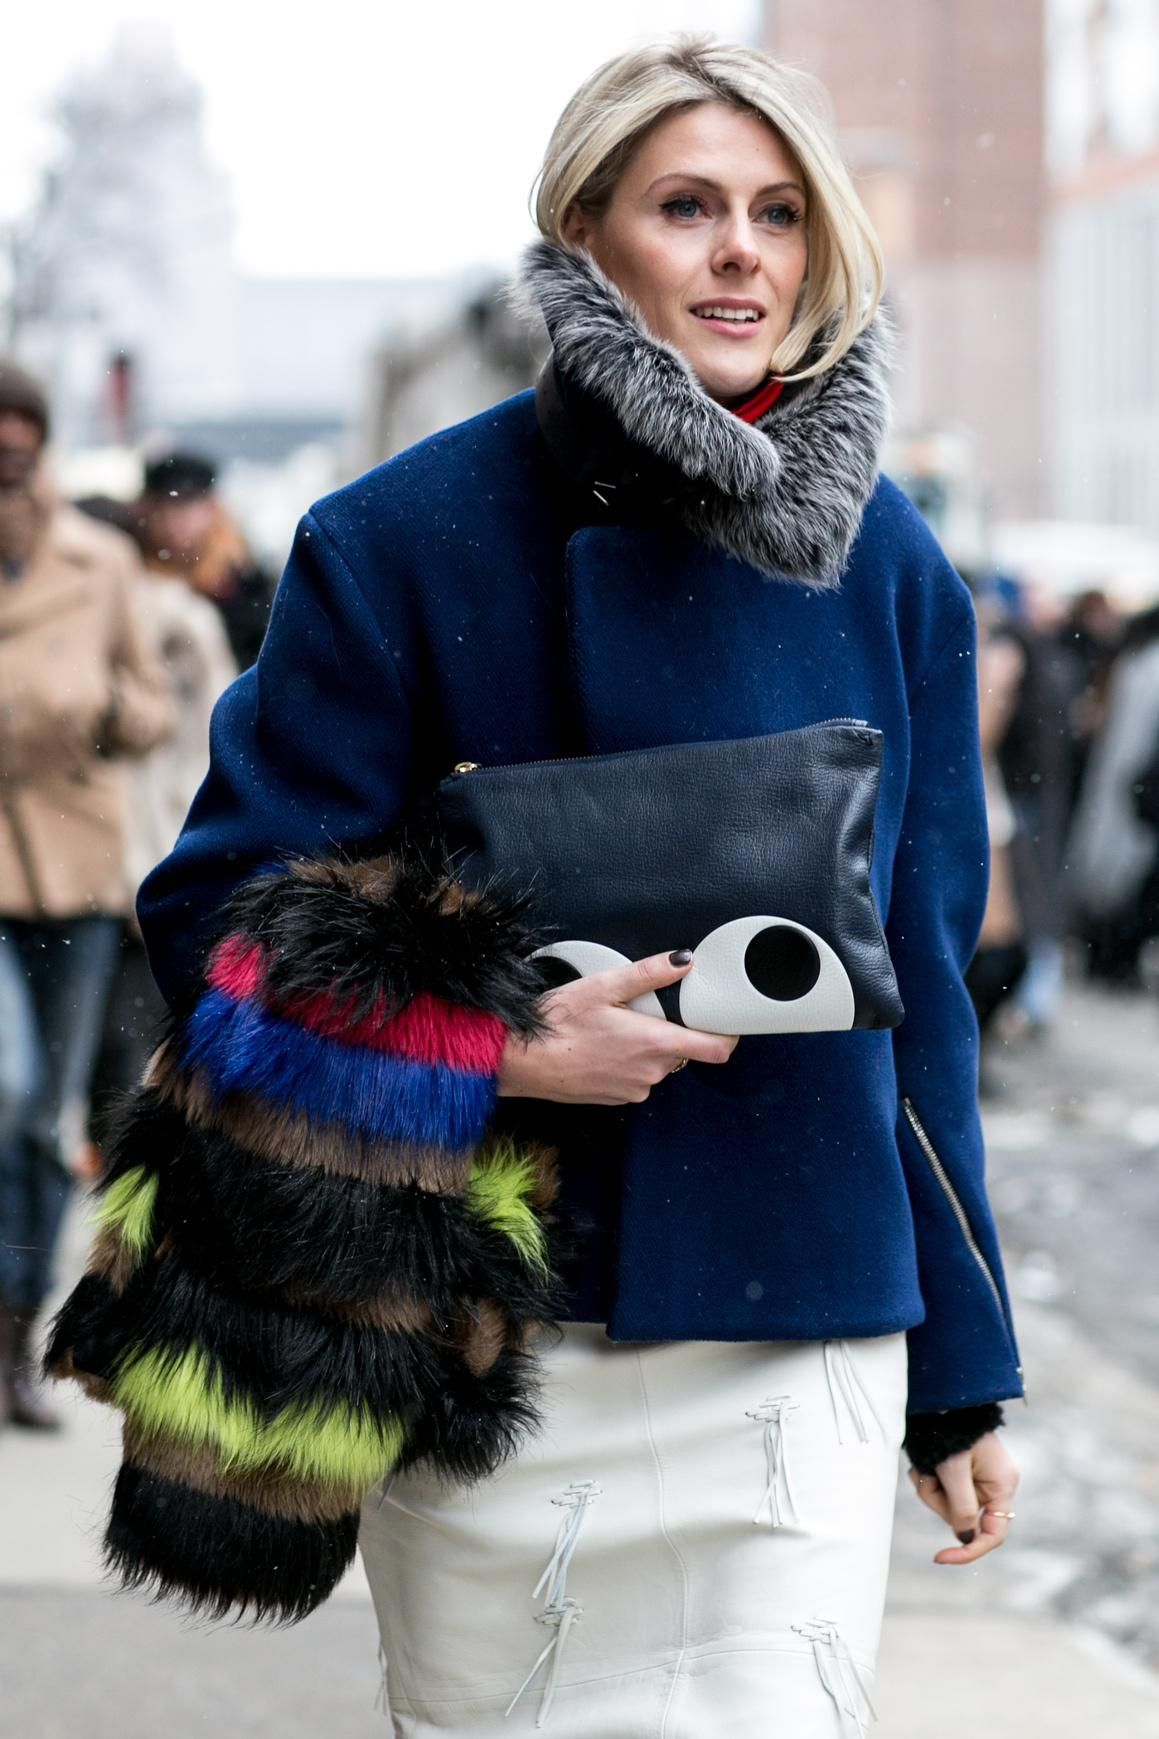 """How to Actually Master """"The Hair Tuck"""" with 4 Easy Styling Tips & Tricks - You know, that thing where the hair is casually tucked into a turtleneck sweater, oversized scarf, or coat? It's a major Fall 2015 trend—here's how to ace it."""